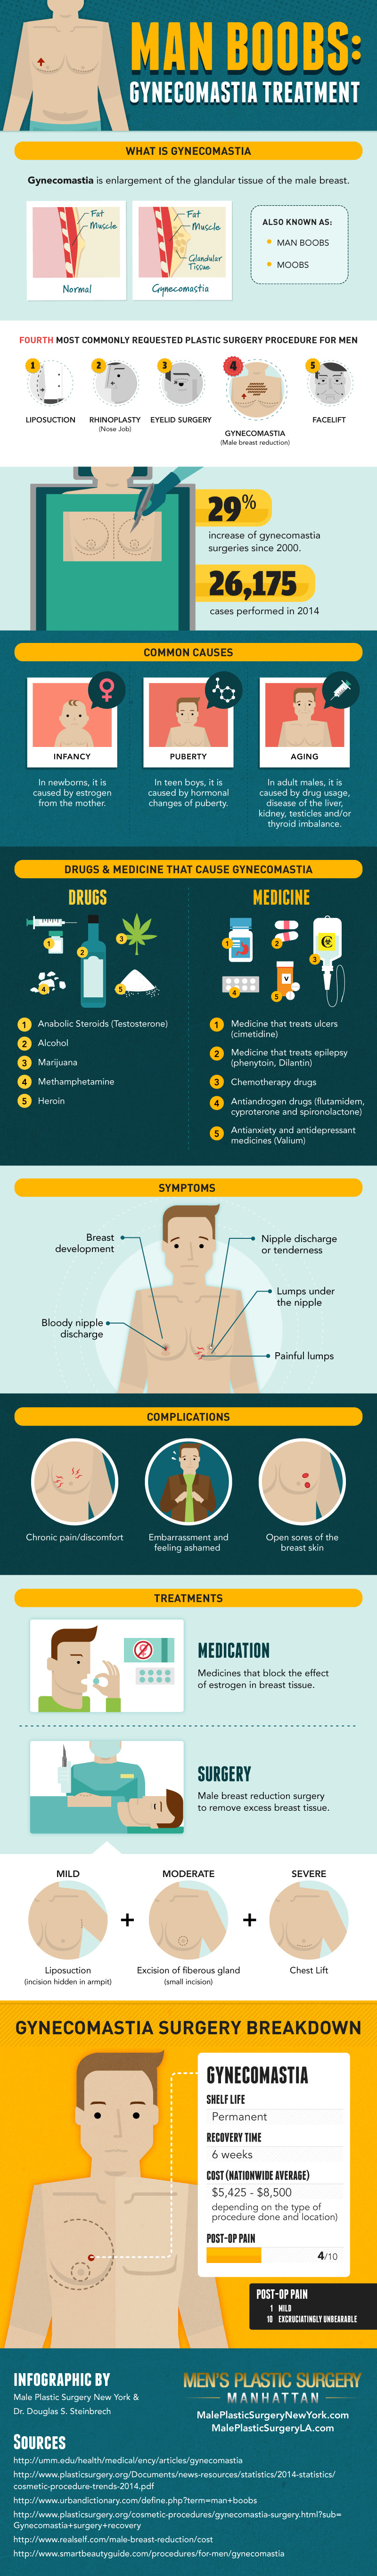 gynecomastia-man-boobs-infographic-LA